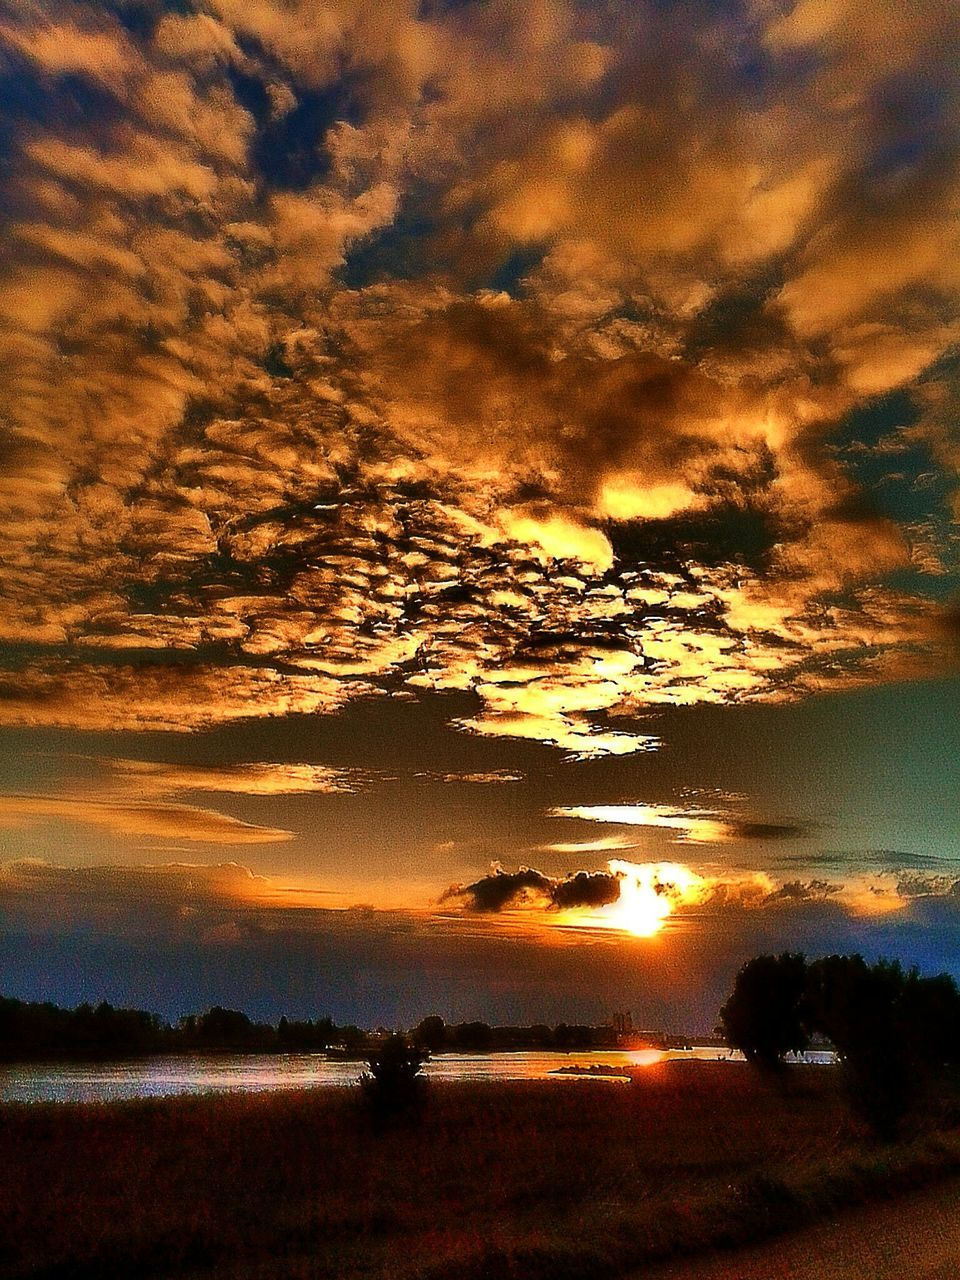 sunset, beauty in nature, nature, scenics, sky, tranquil scene, tranquility, cloud - sky, dramatic sky, majestic, orange color, silhouette, no people, idyllic, outdoors, awe, tree, landscape, water, day